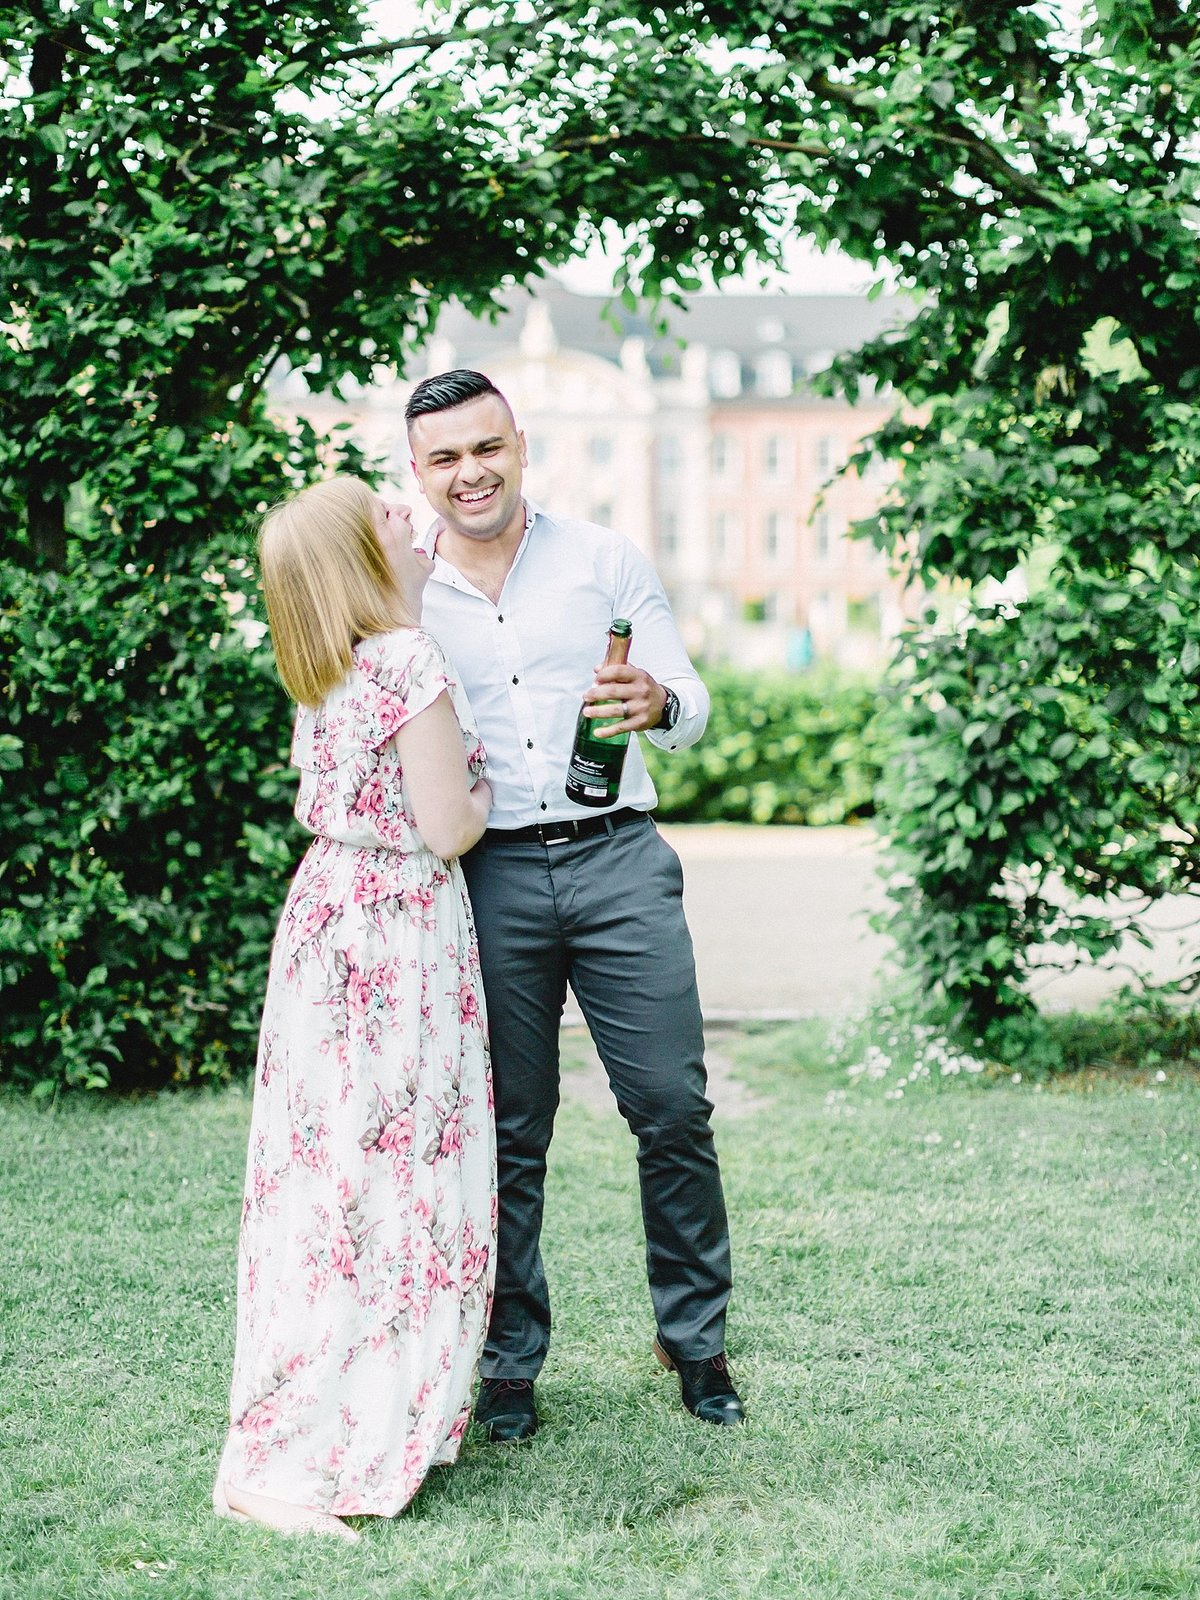 Champagne toast at Romantic European Palace Anniversary Session photographed by France destination wedding photographer Alicia Yarrish Photography